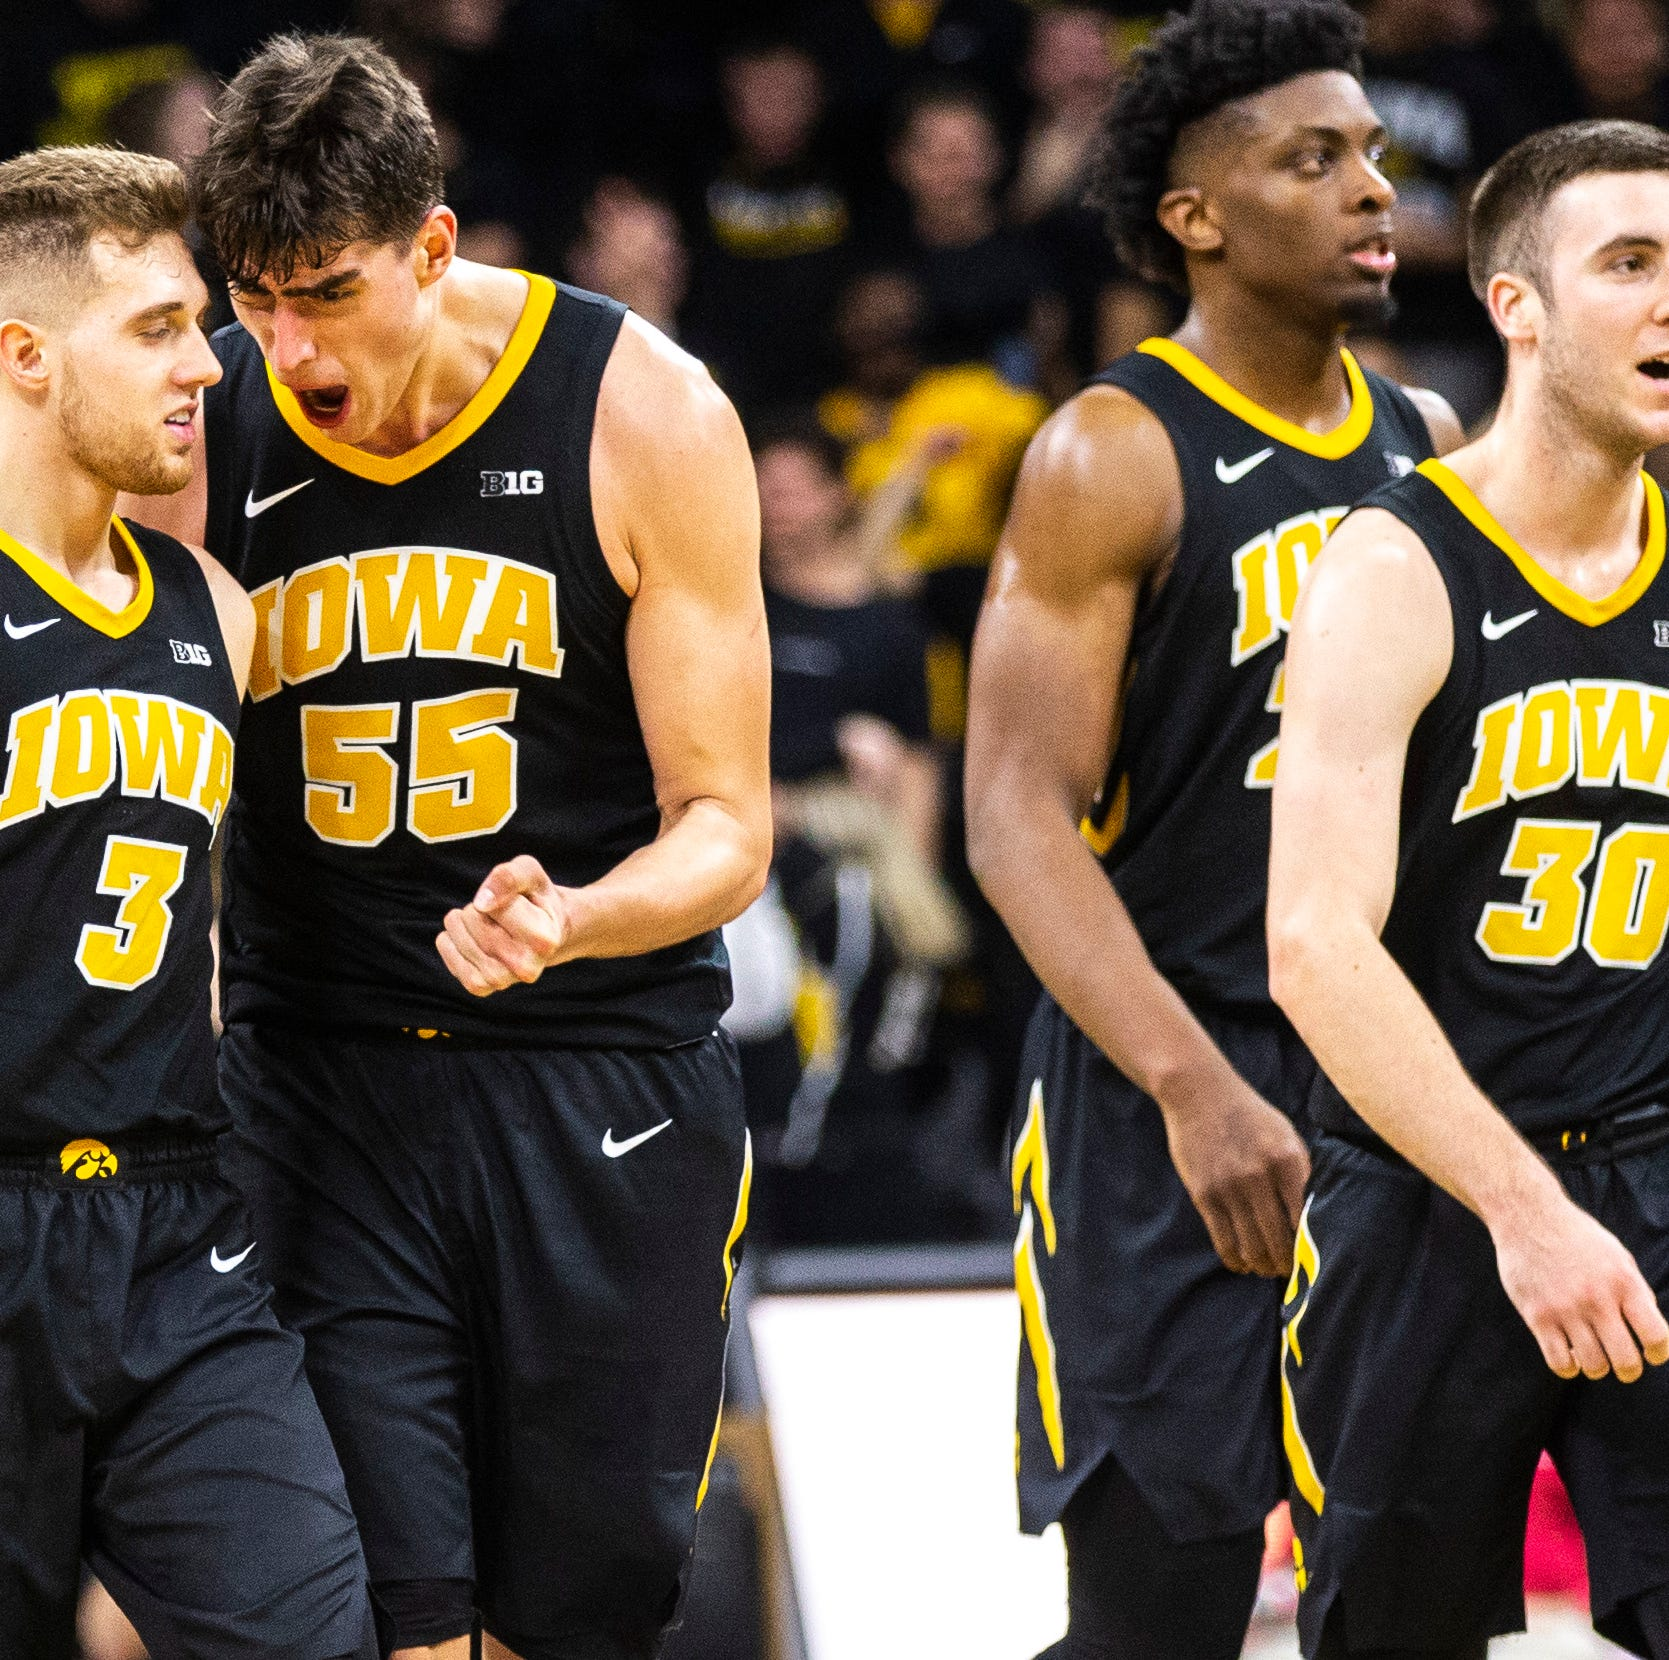 Iowa ranked in this way-too-early preseason top 25 teams for the 2019-20 season